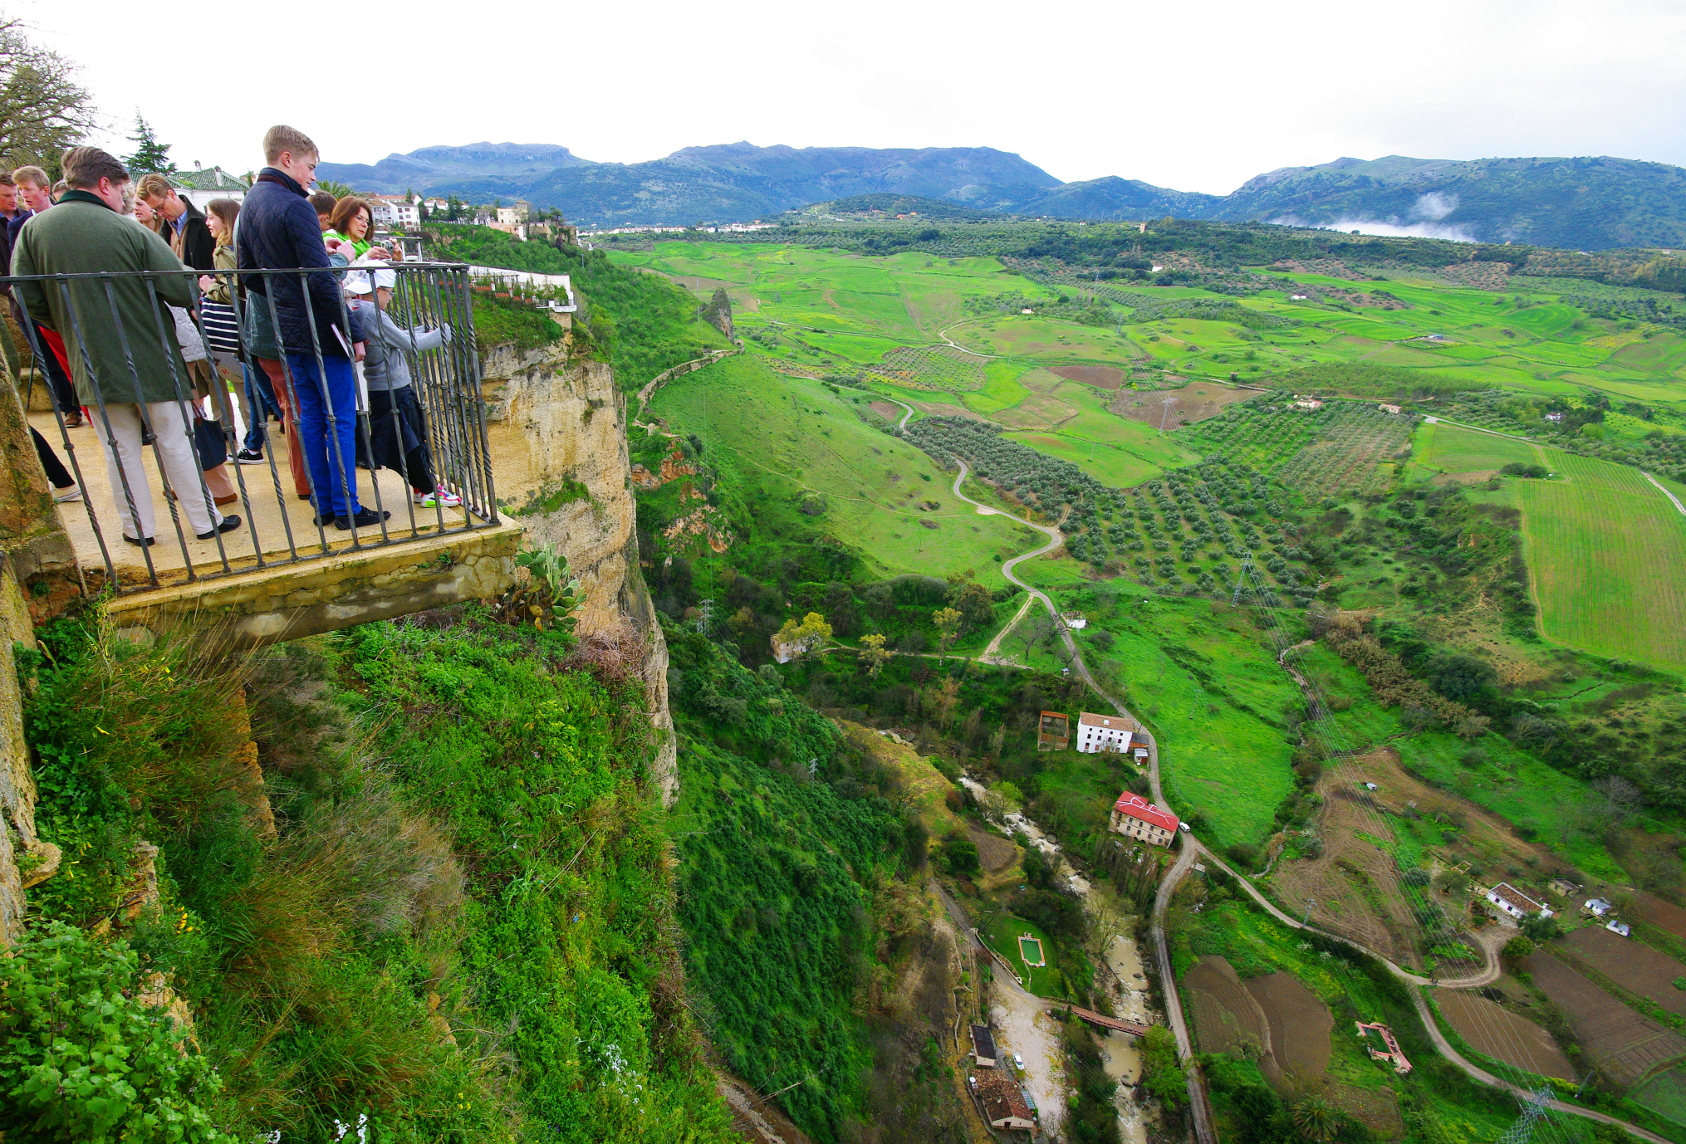 Španija  - Page 2 The-Hendersons-look-out-over-the-gorge-and-valley-in-Ronda